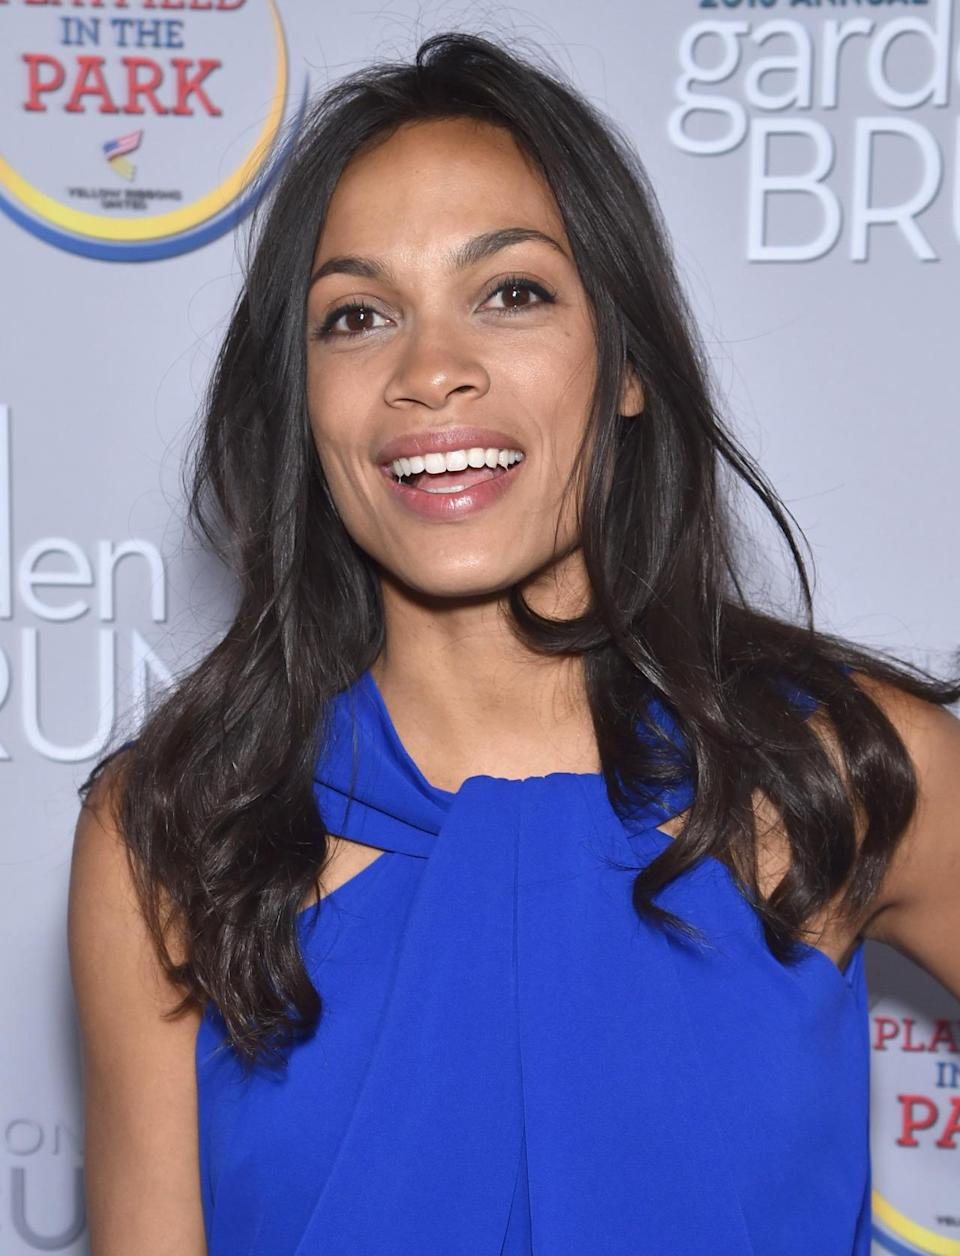 <p>Actress Rosario Dawson attends the Garden Brunch prior to the 102nd White House Correspondents' Dinner, April 30. <i>(Photo: Dimitrios Kambouris/Getty Images)</i></p>